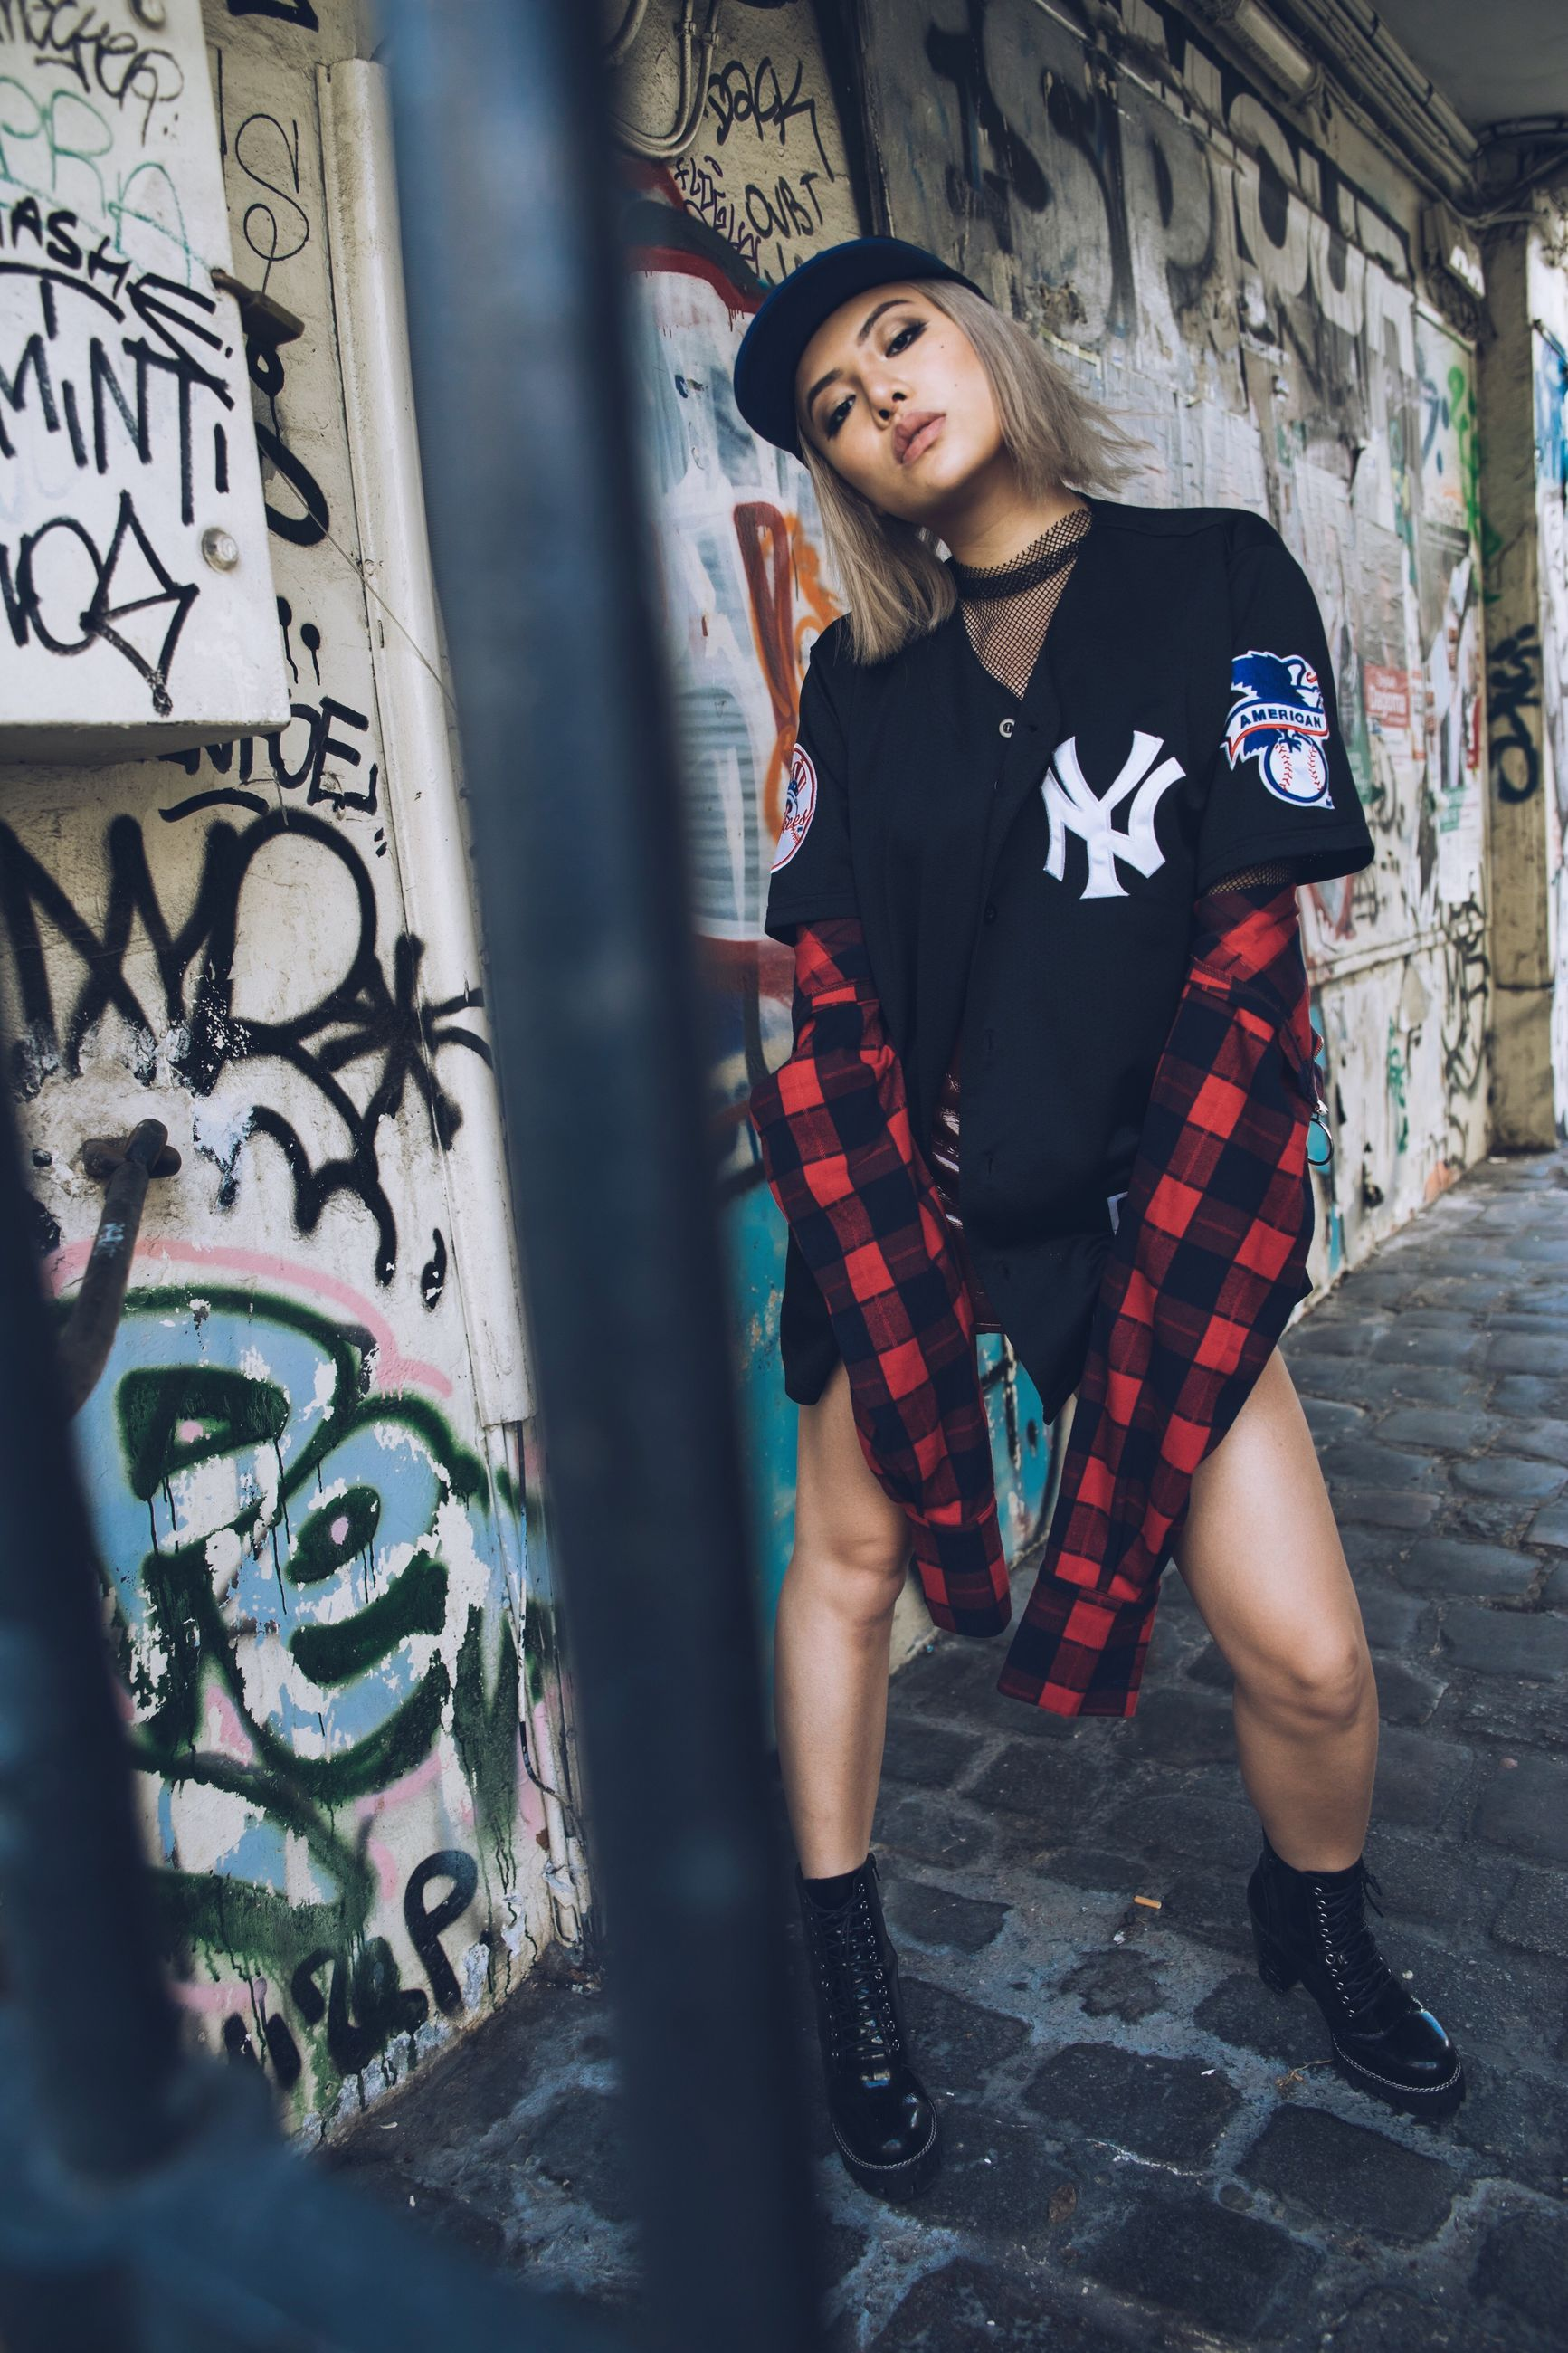 real people, graffiti, full length, one person, lifestyles, young women, young adult, front view, standing, casual clothing, leisure activity, built structure, architecture, looking at camera, fashion, outdoors, day, beautiful woman, happiness, portrait, building exterior, smiling